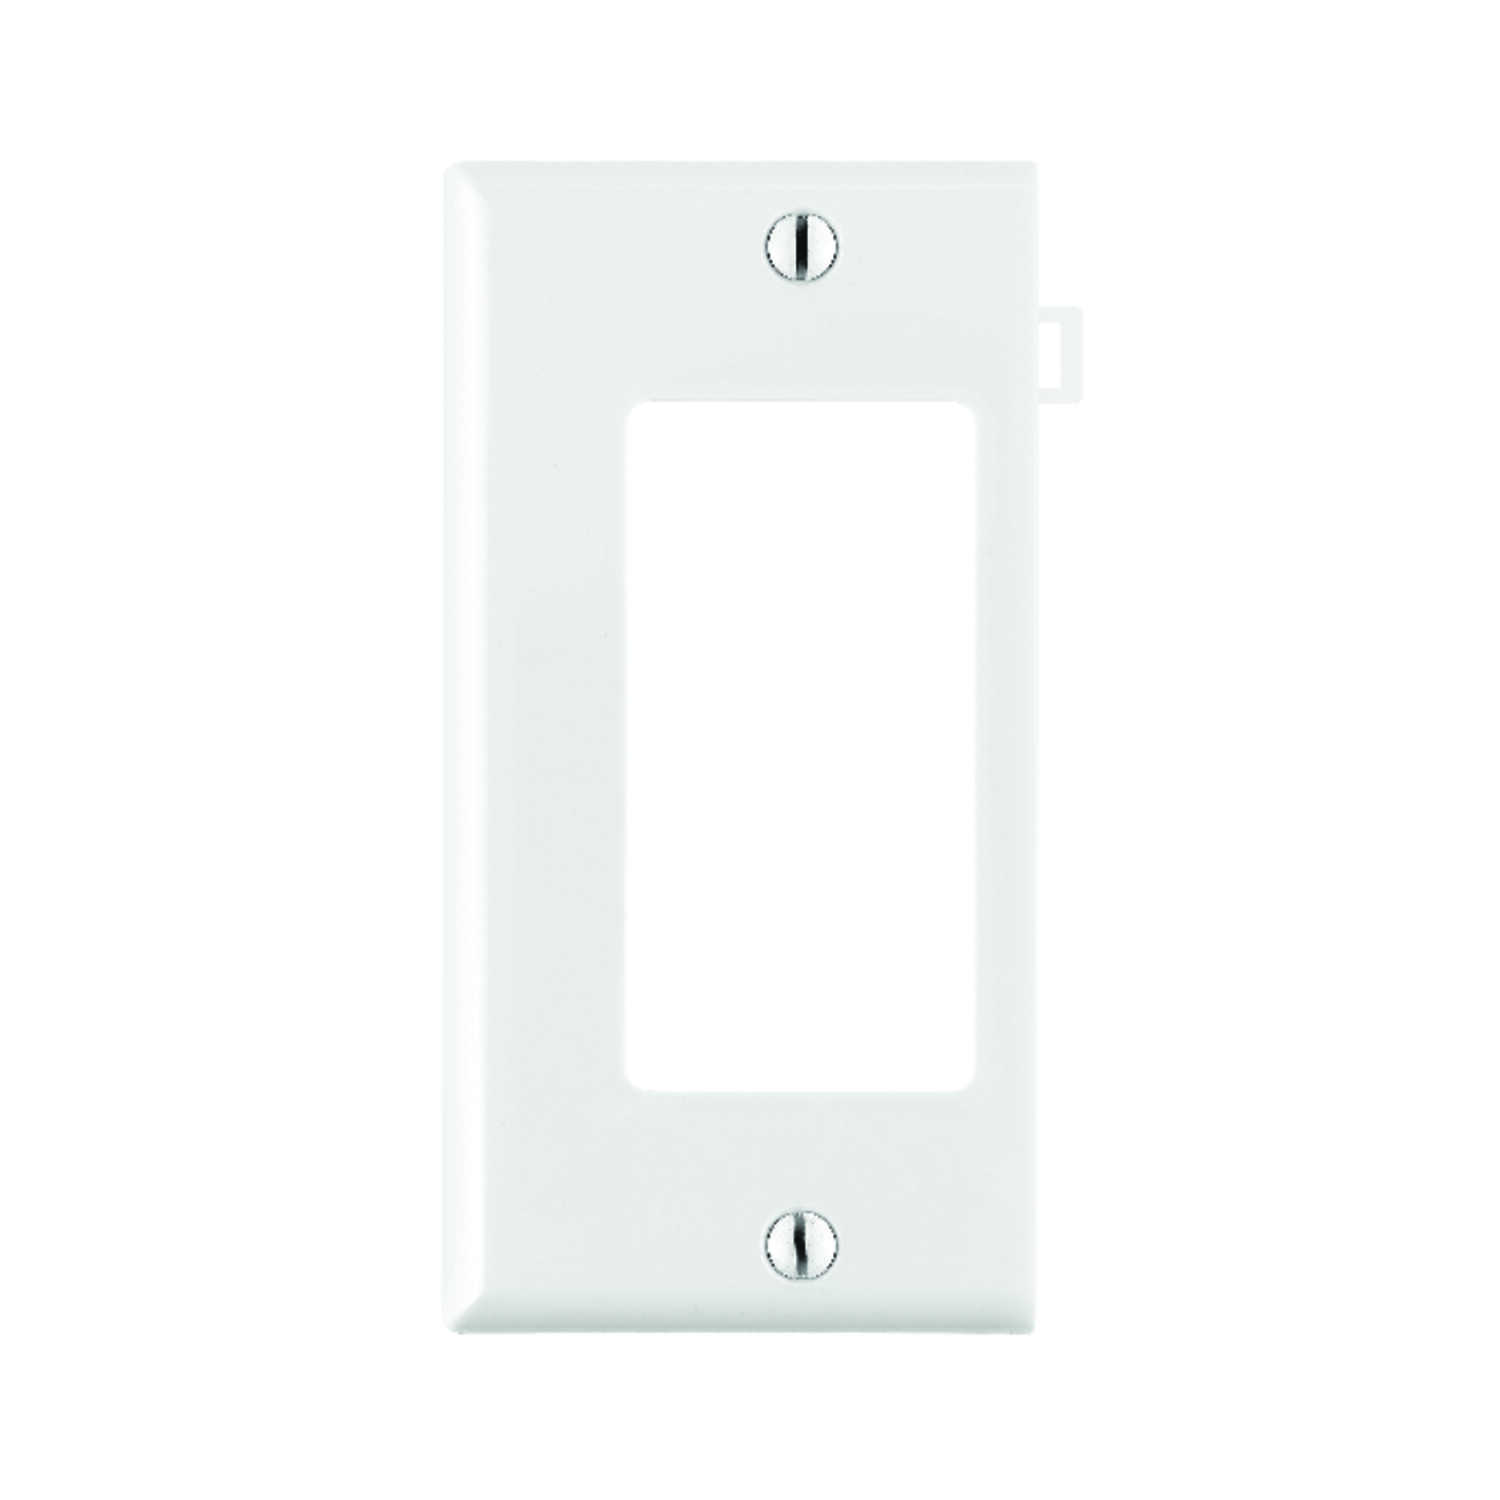 Leviton  End Section  White  1 gang Nylon  GFCI/Rocker  Wall Plate  1 pk